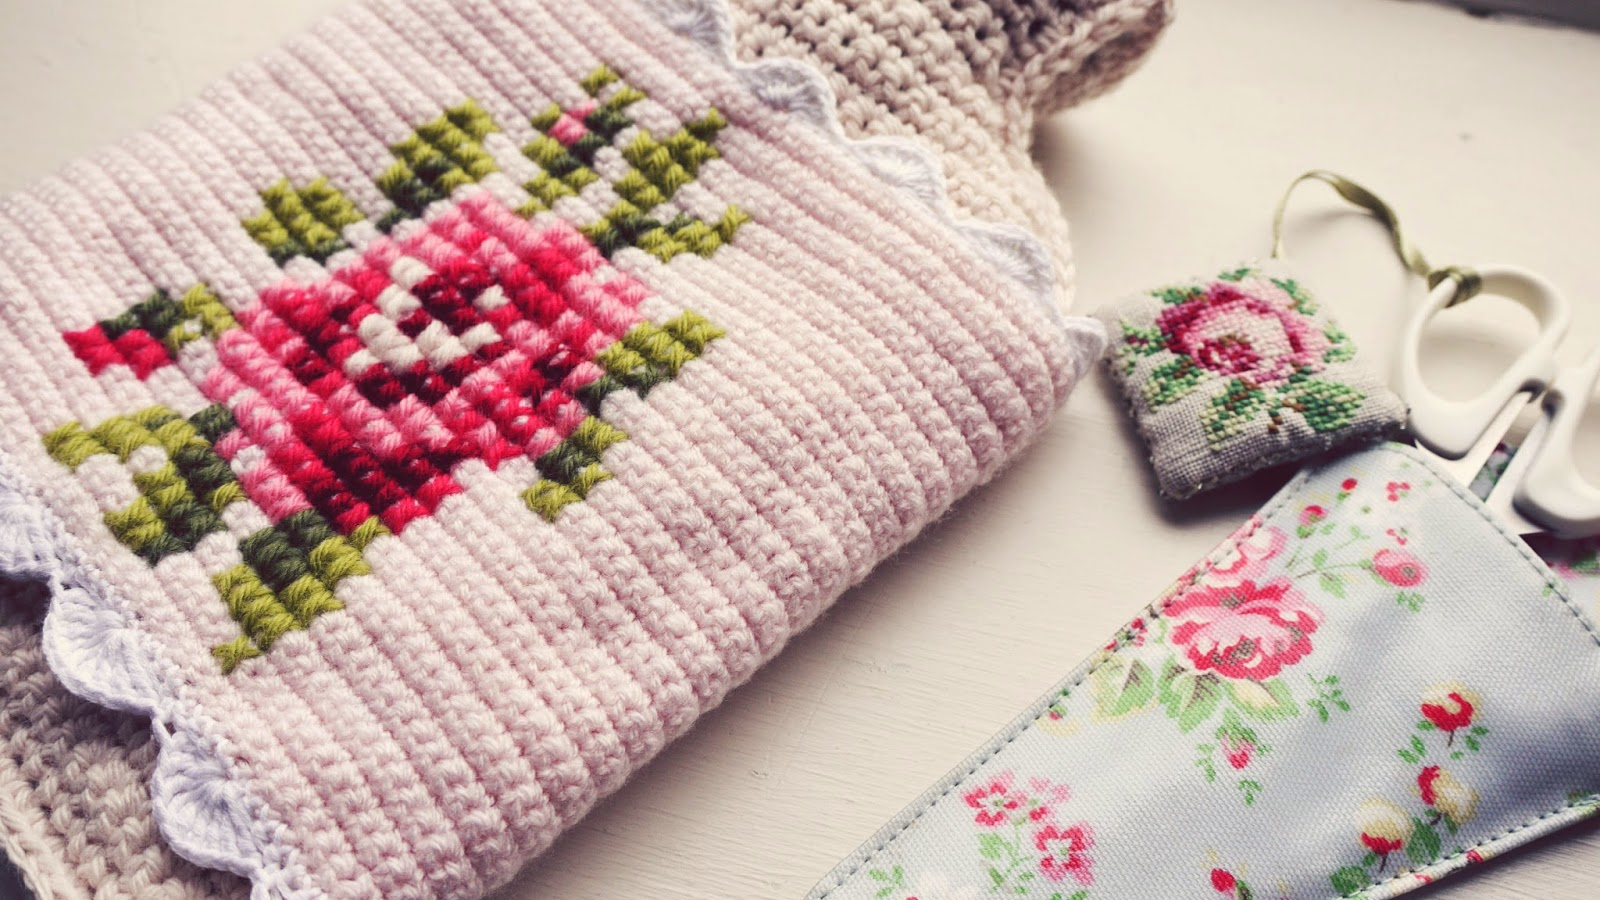 Porcupine Design: Crochet Hot Water Bottle Covers